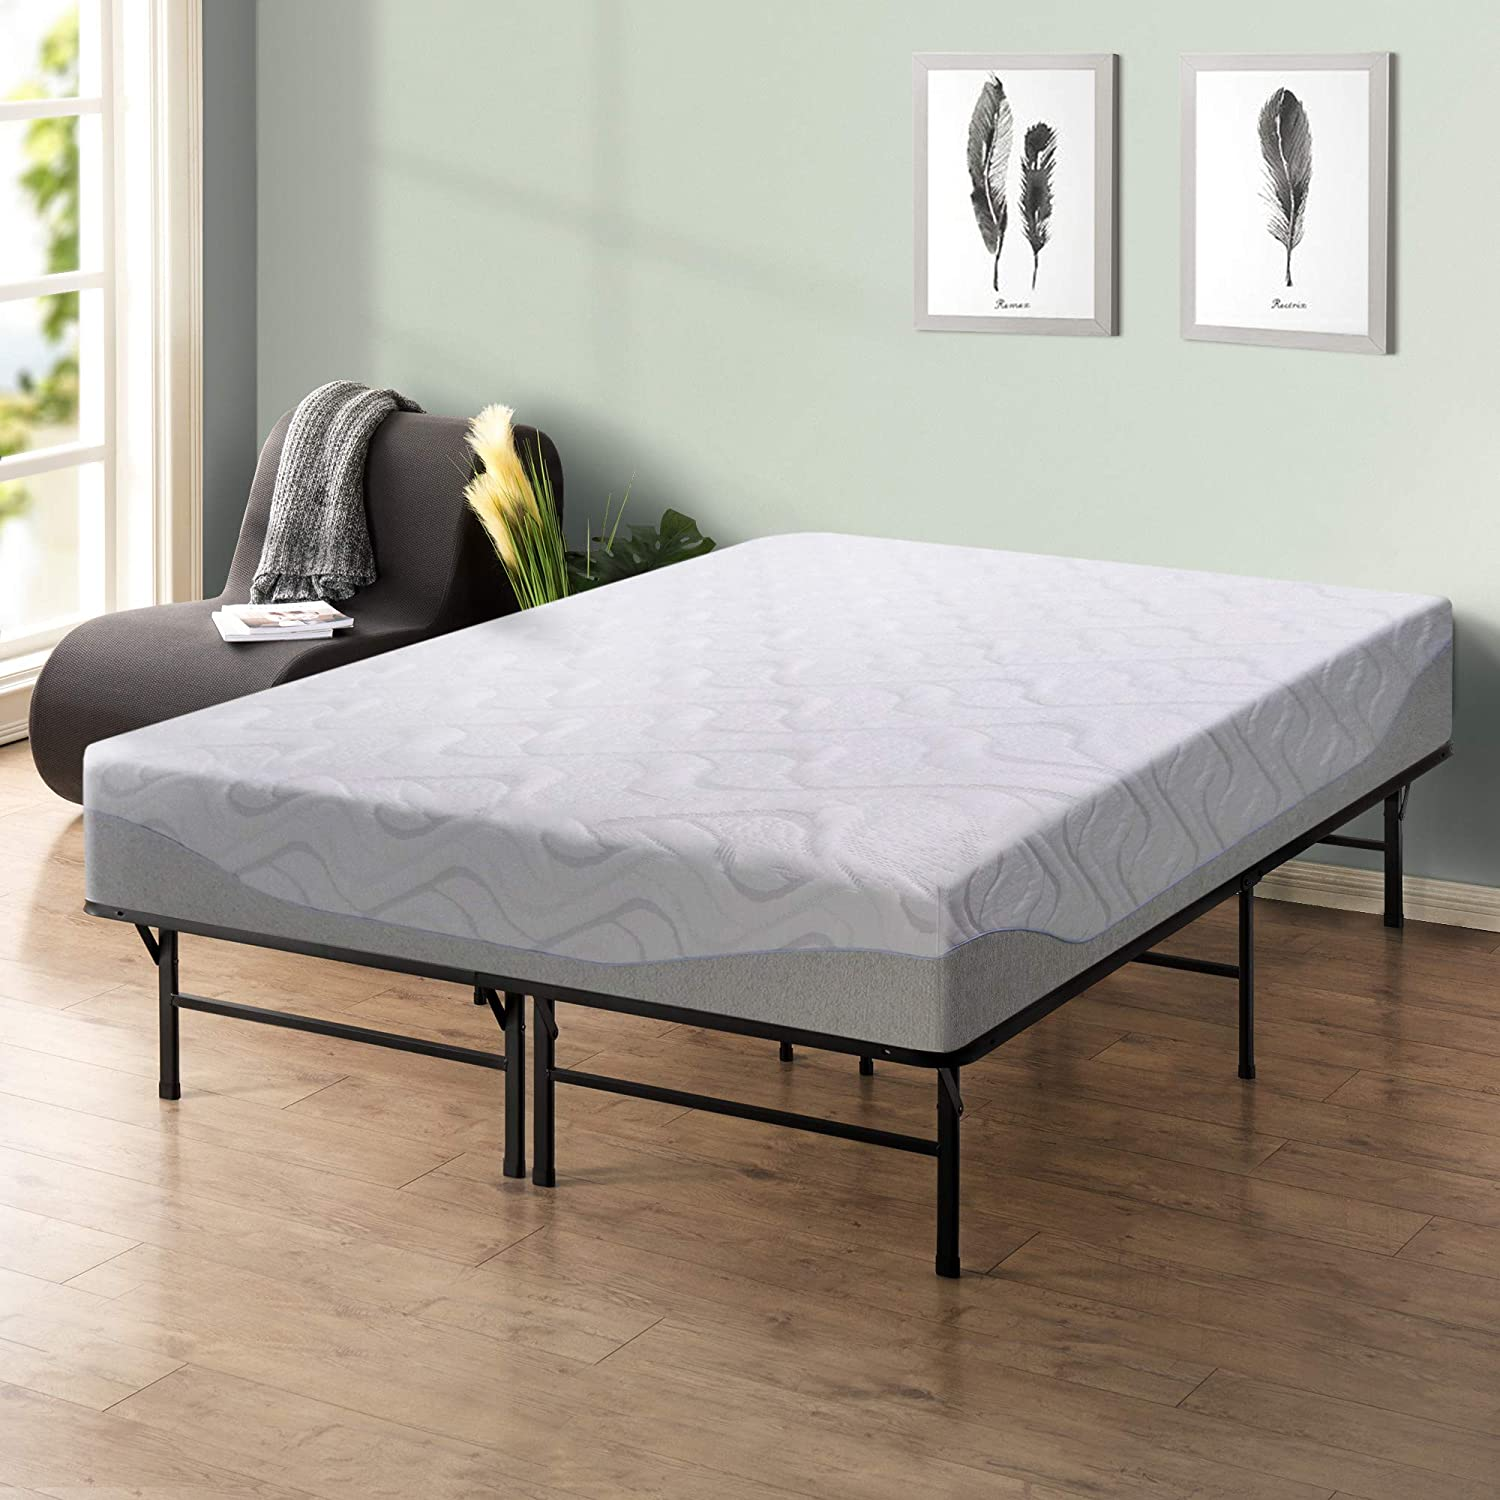 Amazon Com Best Price Mattress 11 Gel Infused Memory Foam